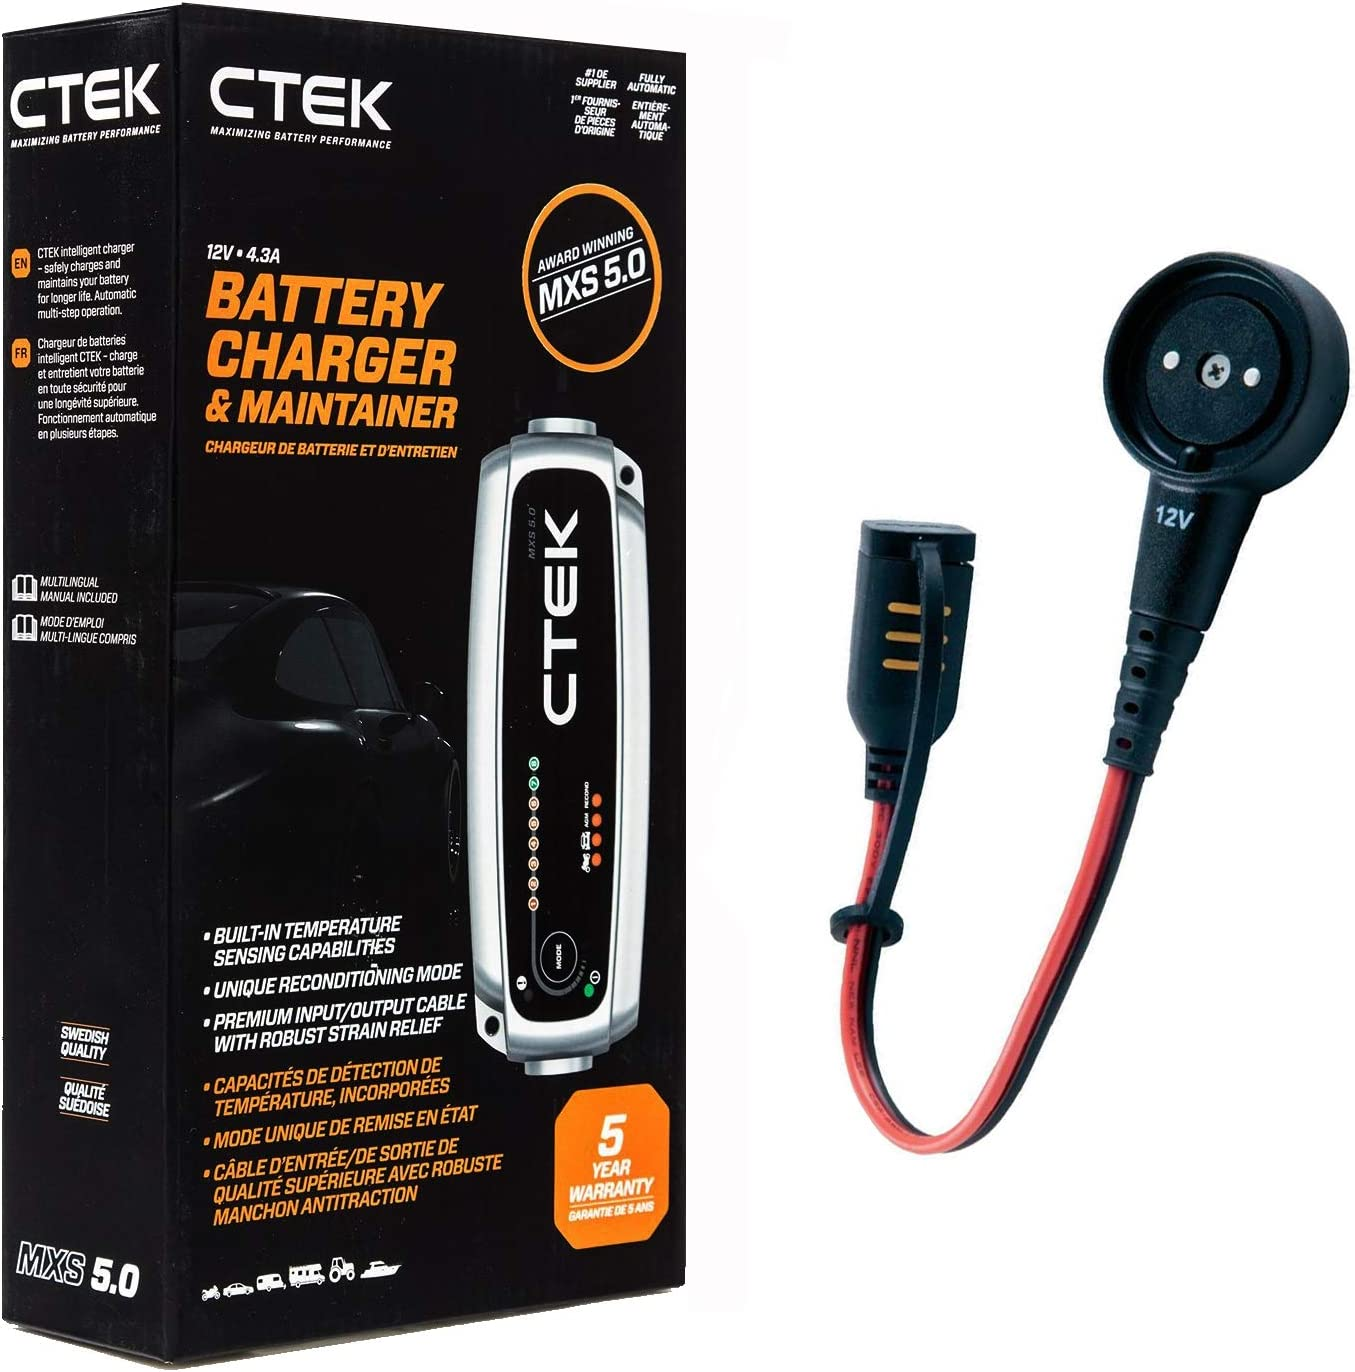 Juice Your Ride Battery Charger Tender Kit For Ferrari Portofino Includes Ctek 4 3a Charger Custom Adapter For Ferrari Without Indicator Batteries Accessories Amazon Canada